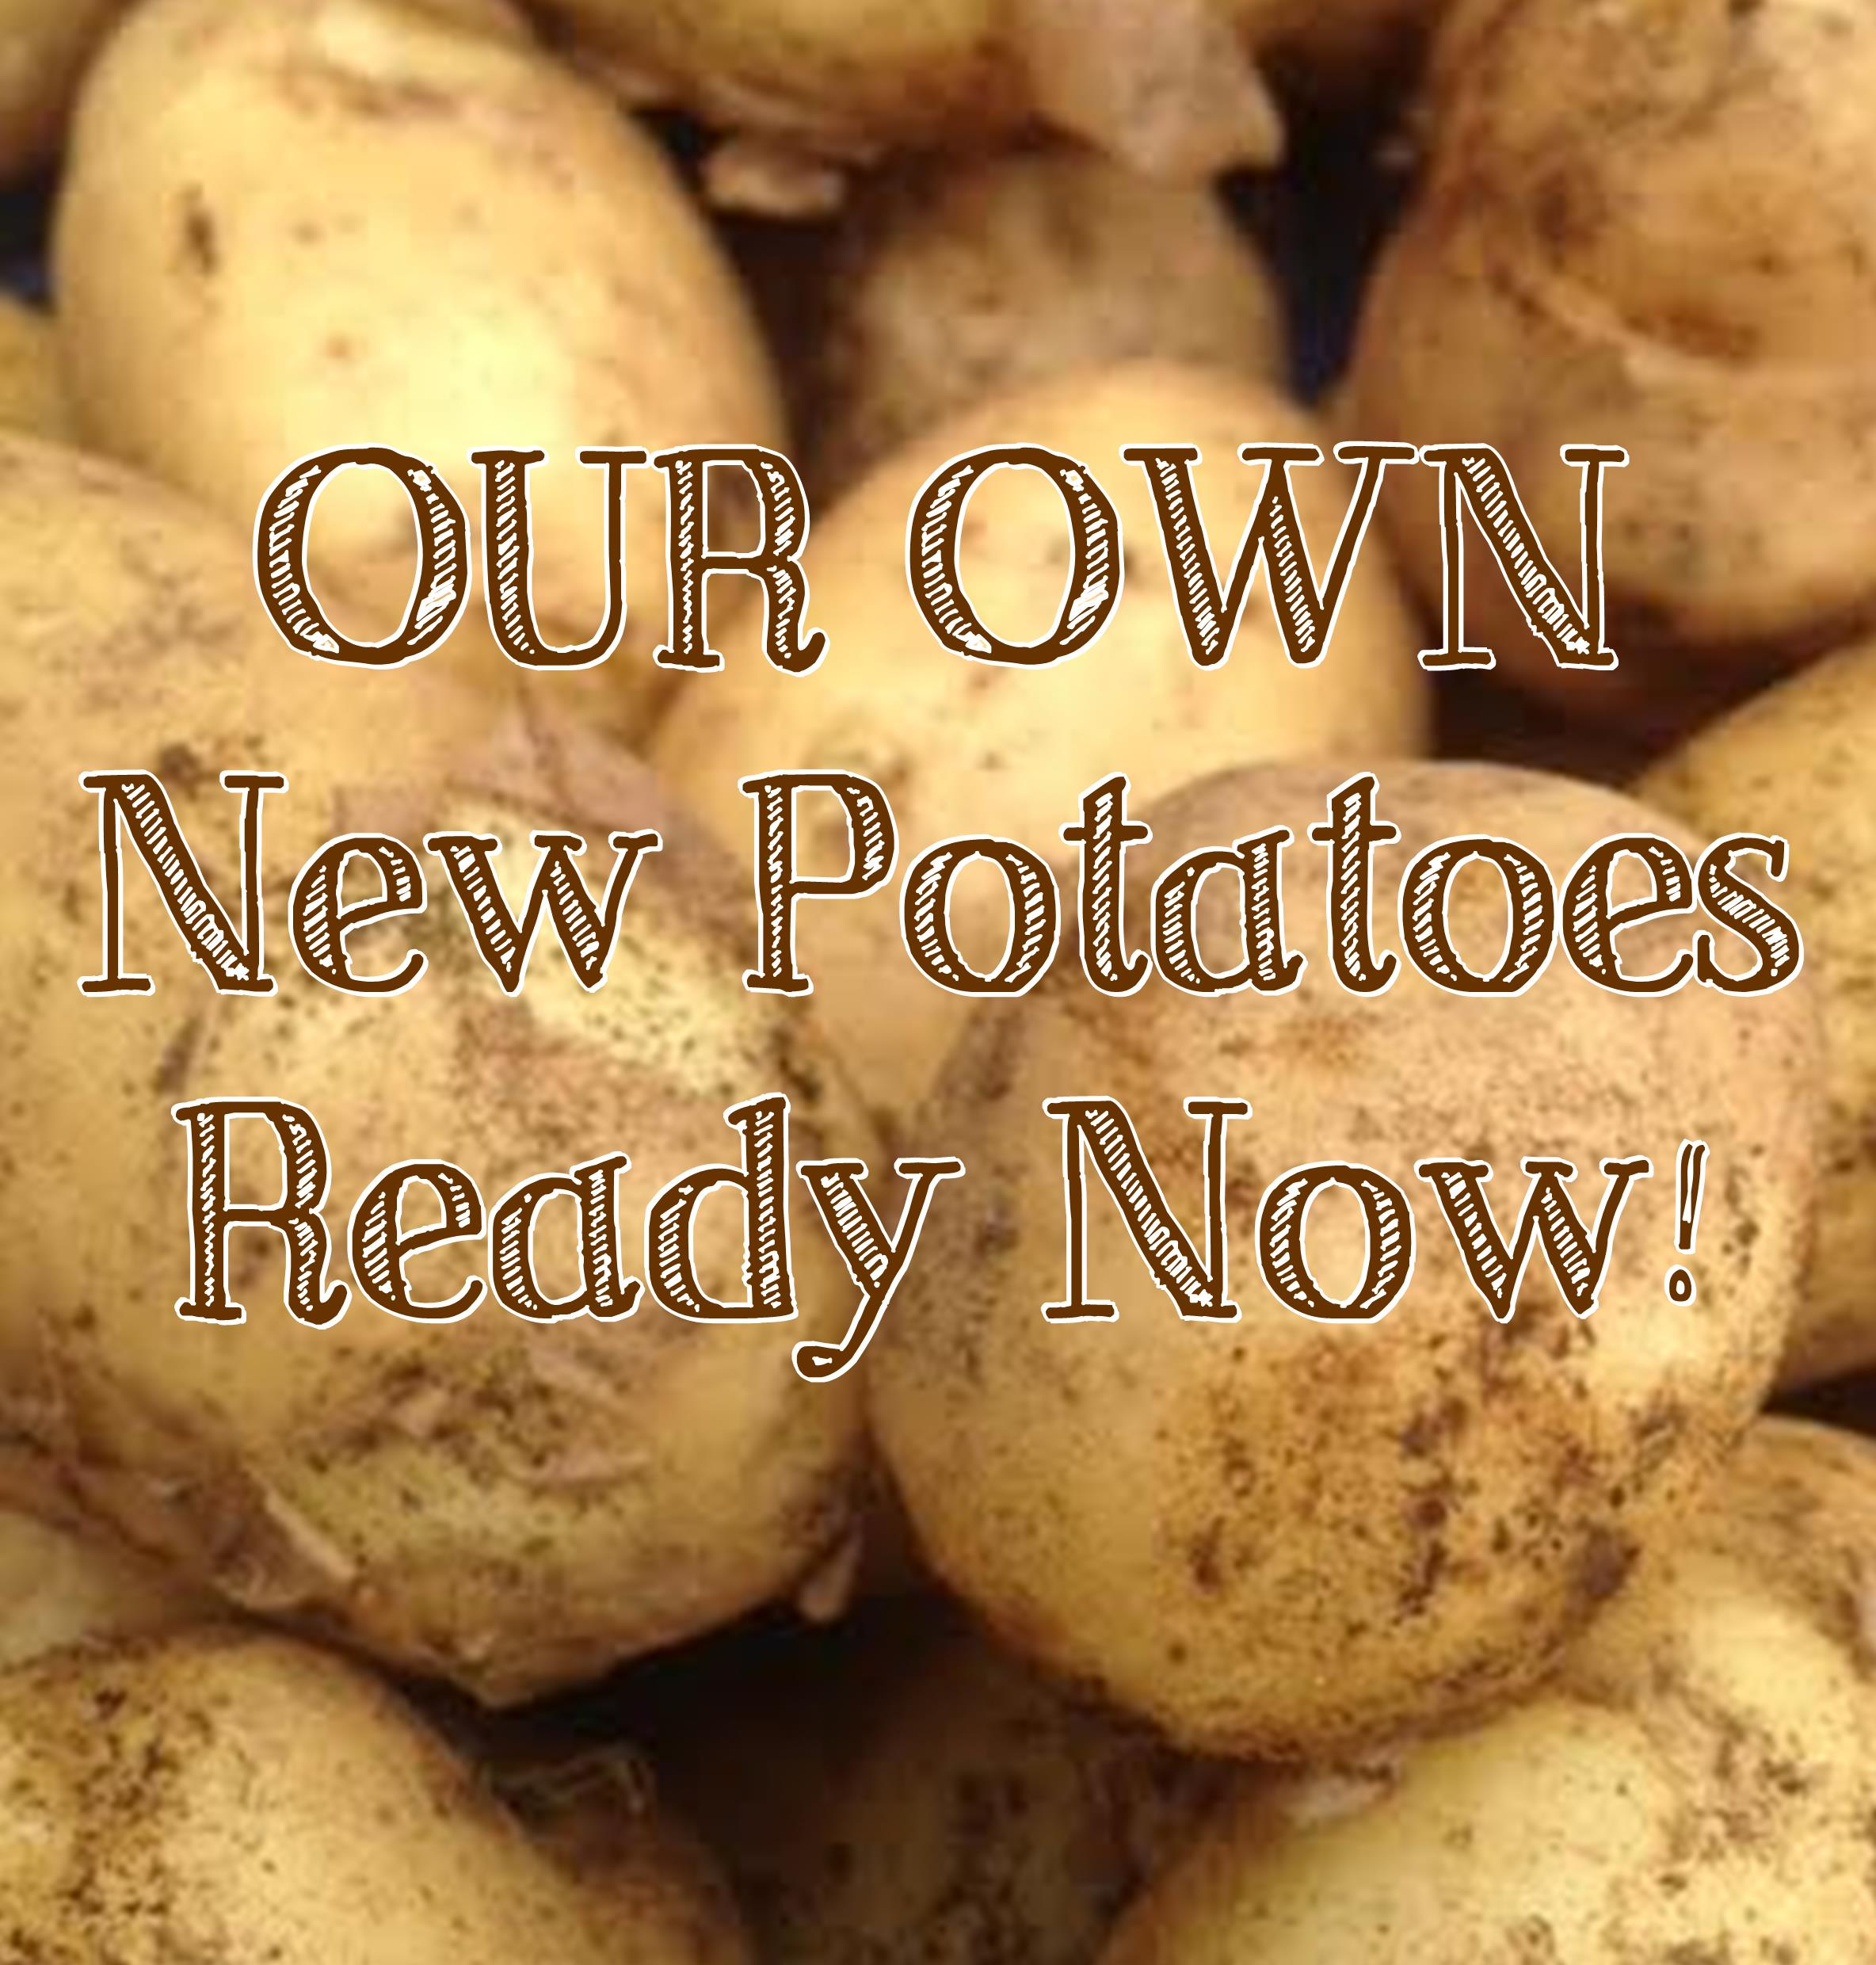 PRODUCE - New Potatoes!